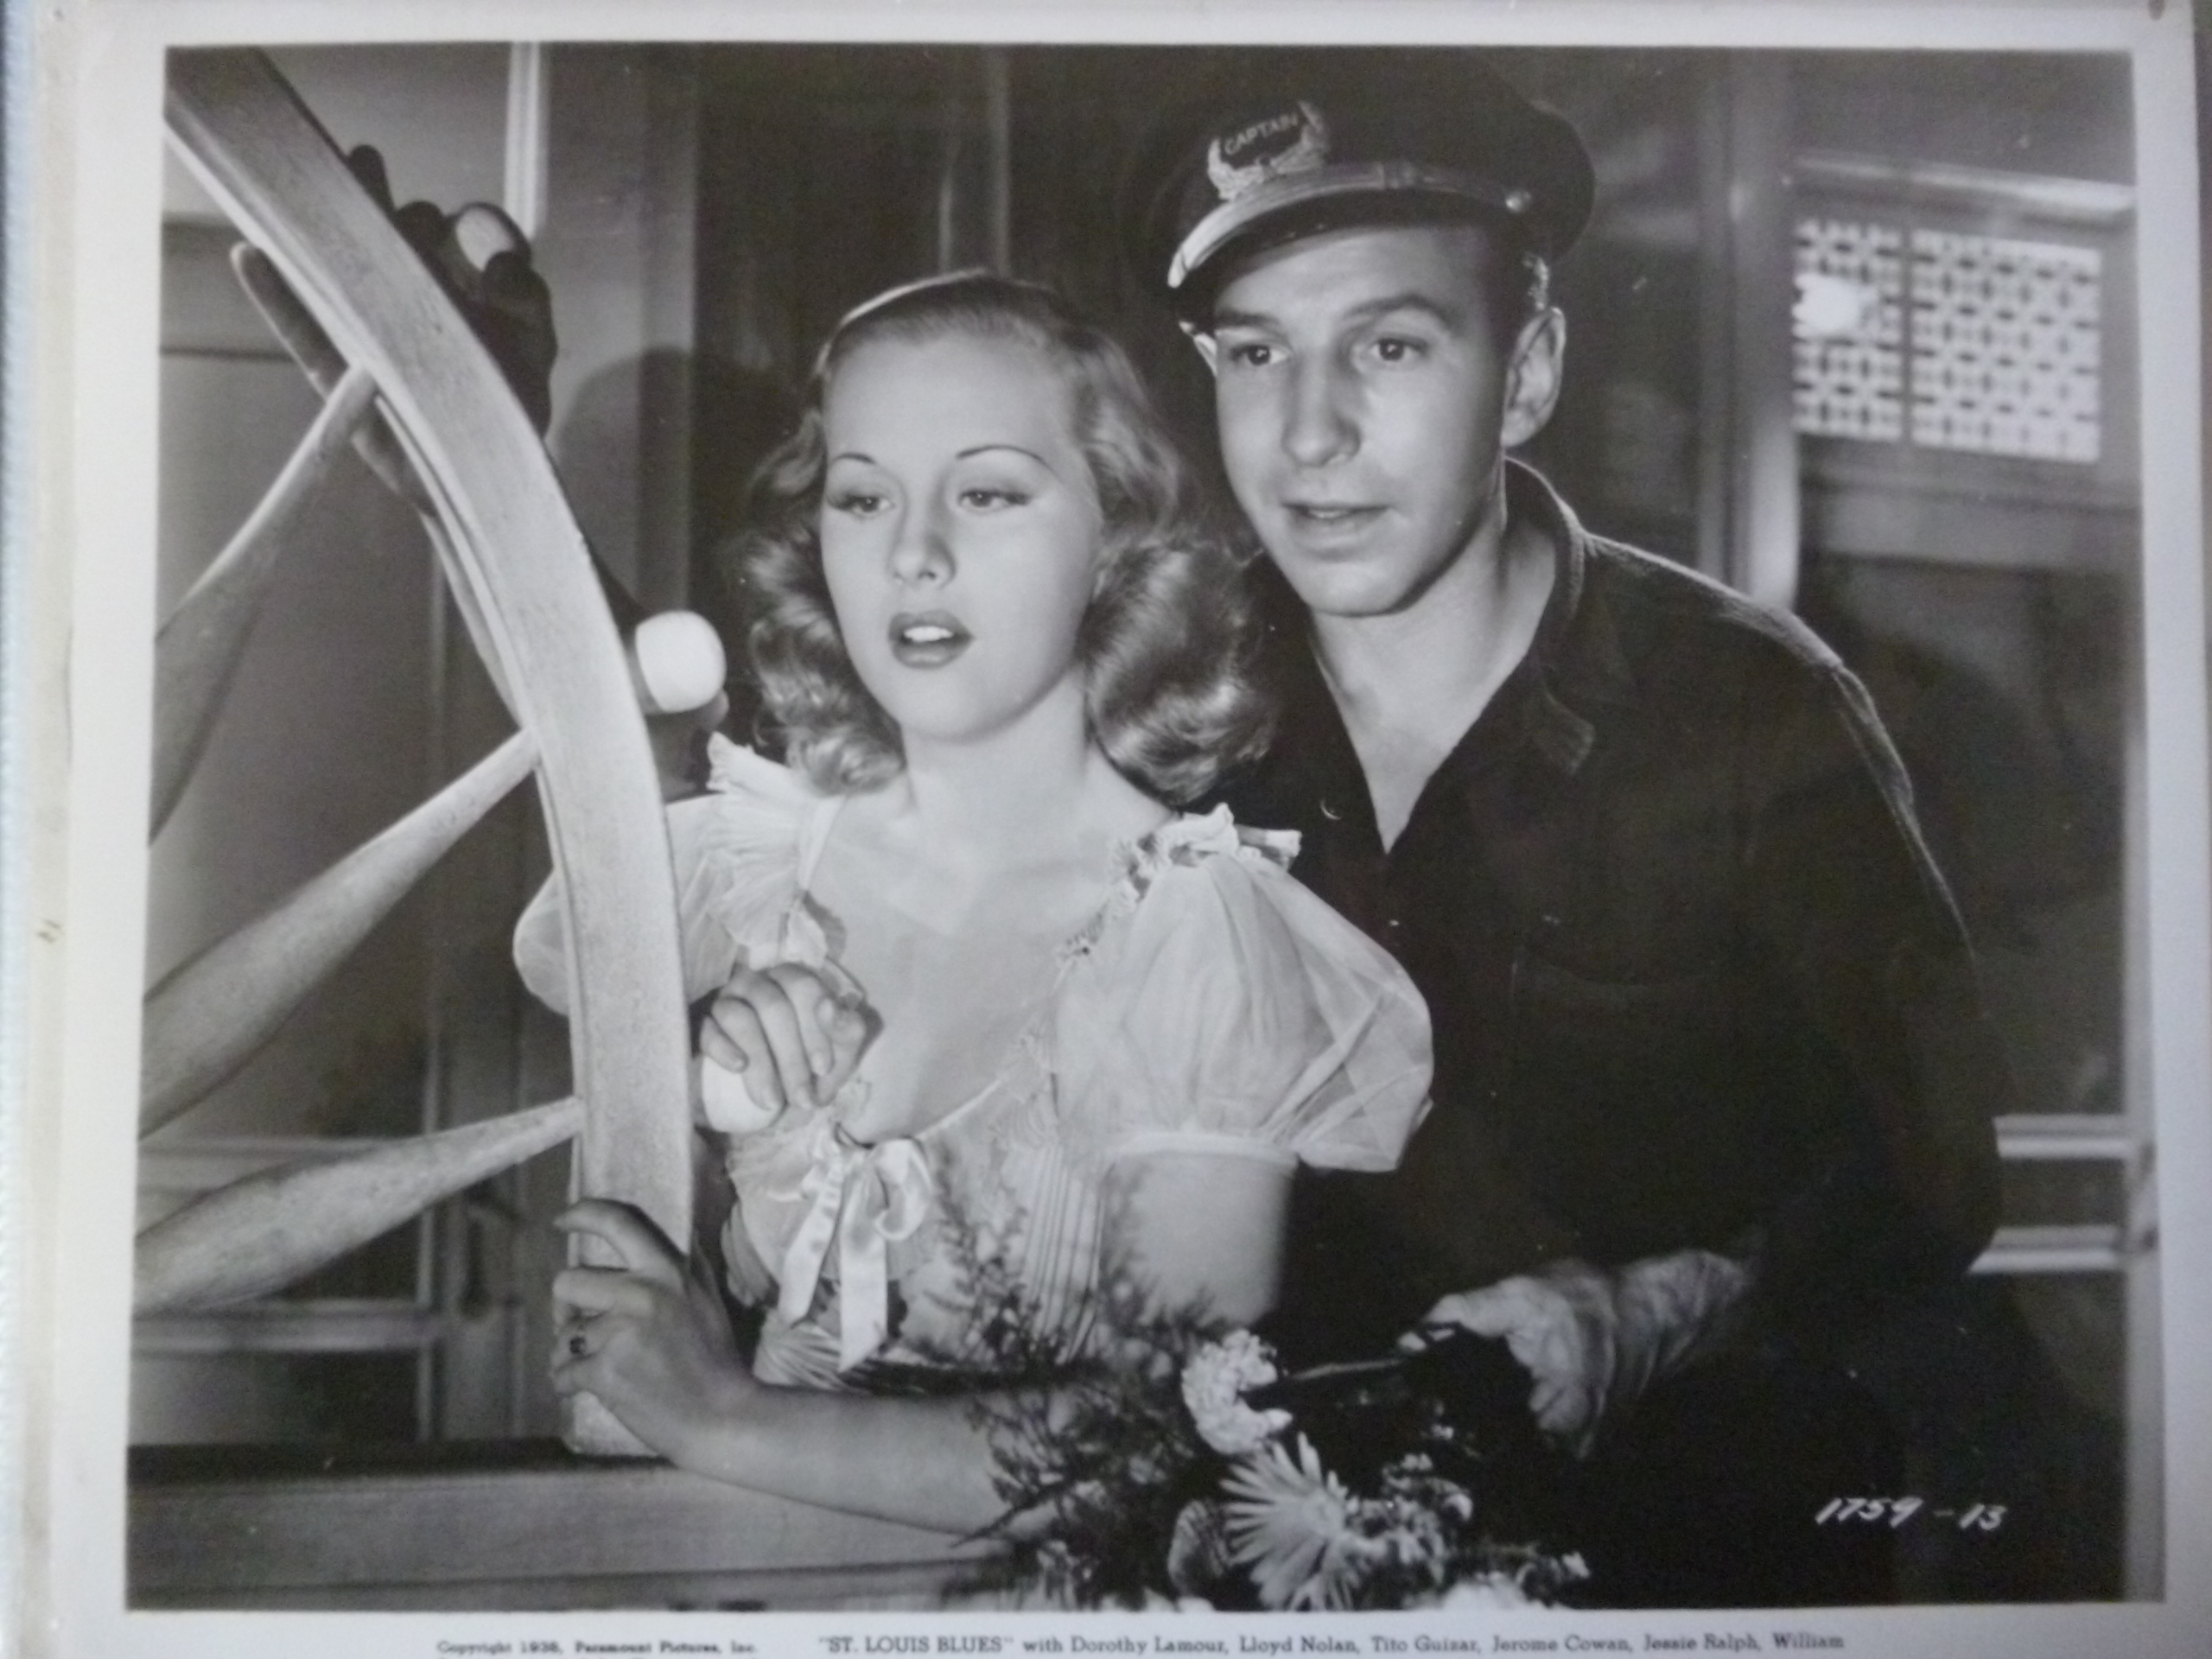 Lloyd Nolan and Mary Parker in St. Louis Blues (1939)